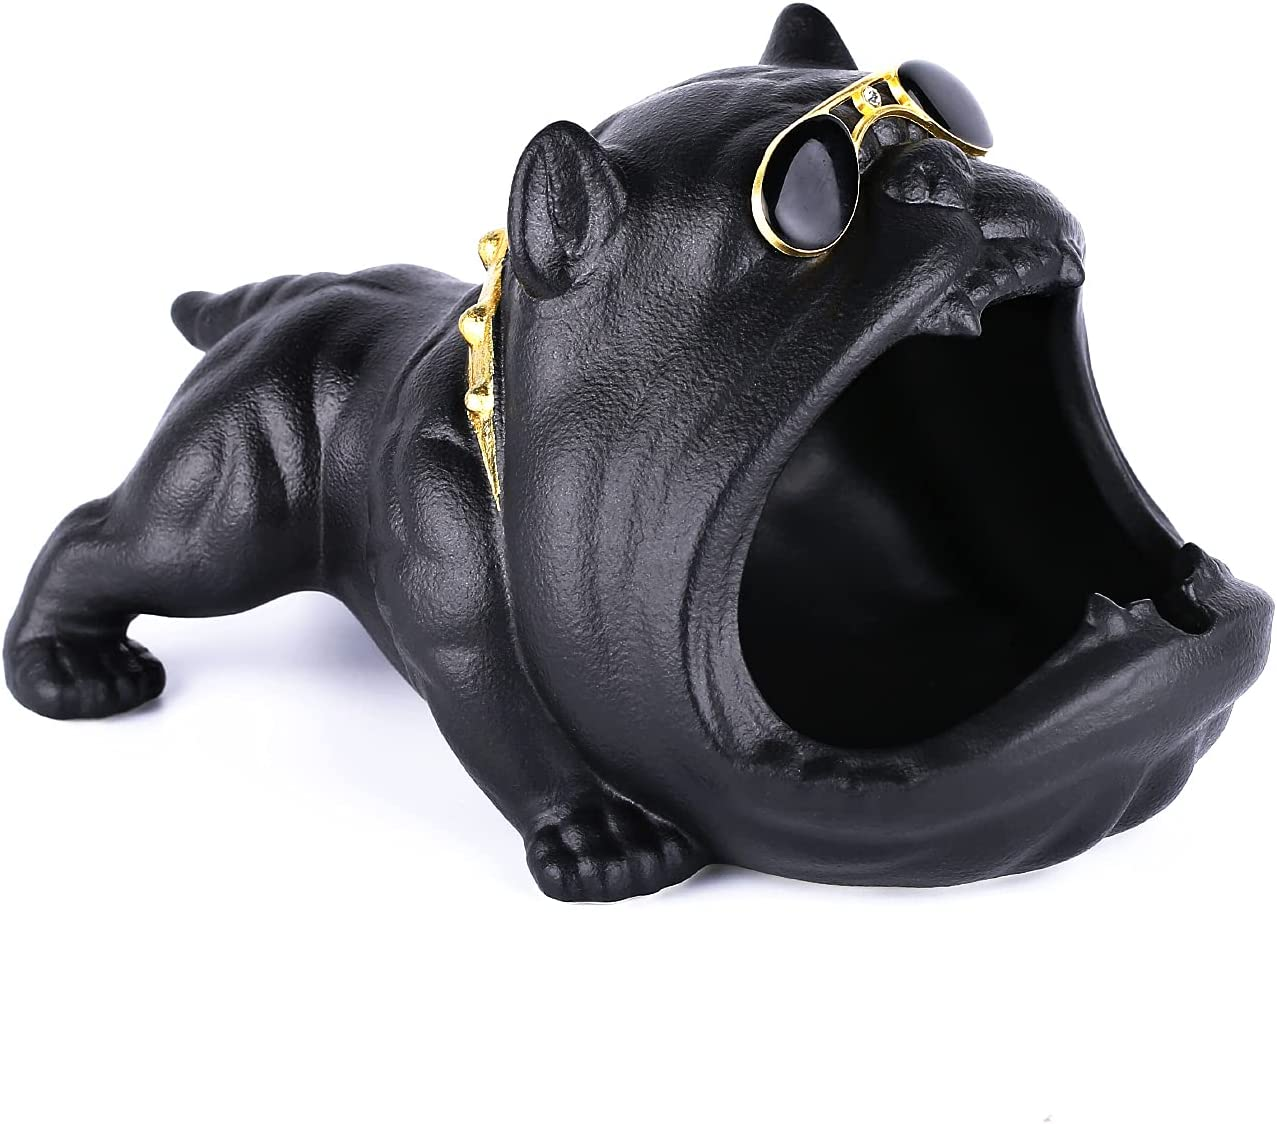 Roaring hippo,ceramic ashtray,cute cartoon dog creative ashtray (black),desktop ashtray for indoor/outdoor use,office and home decorations,are all great choices for holiday gifts.